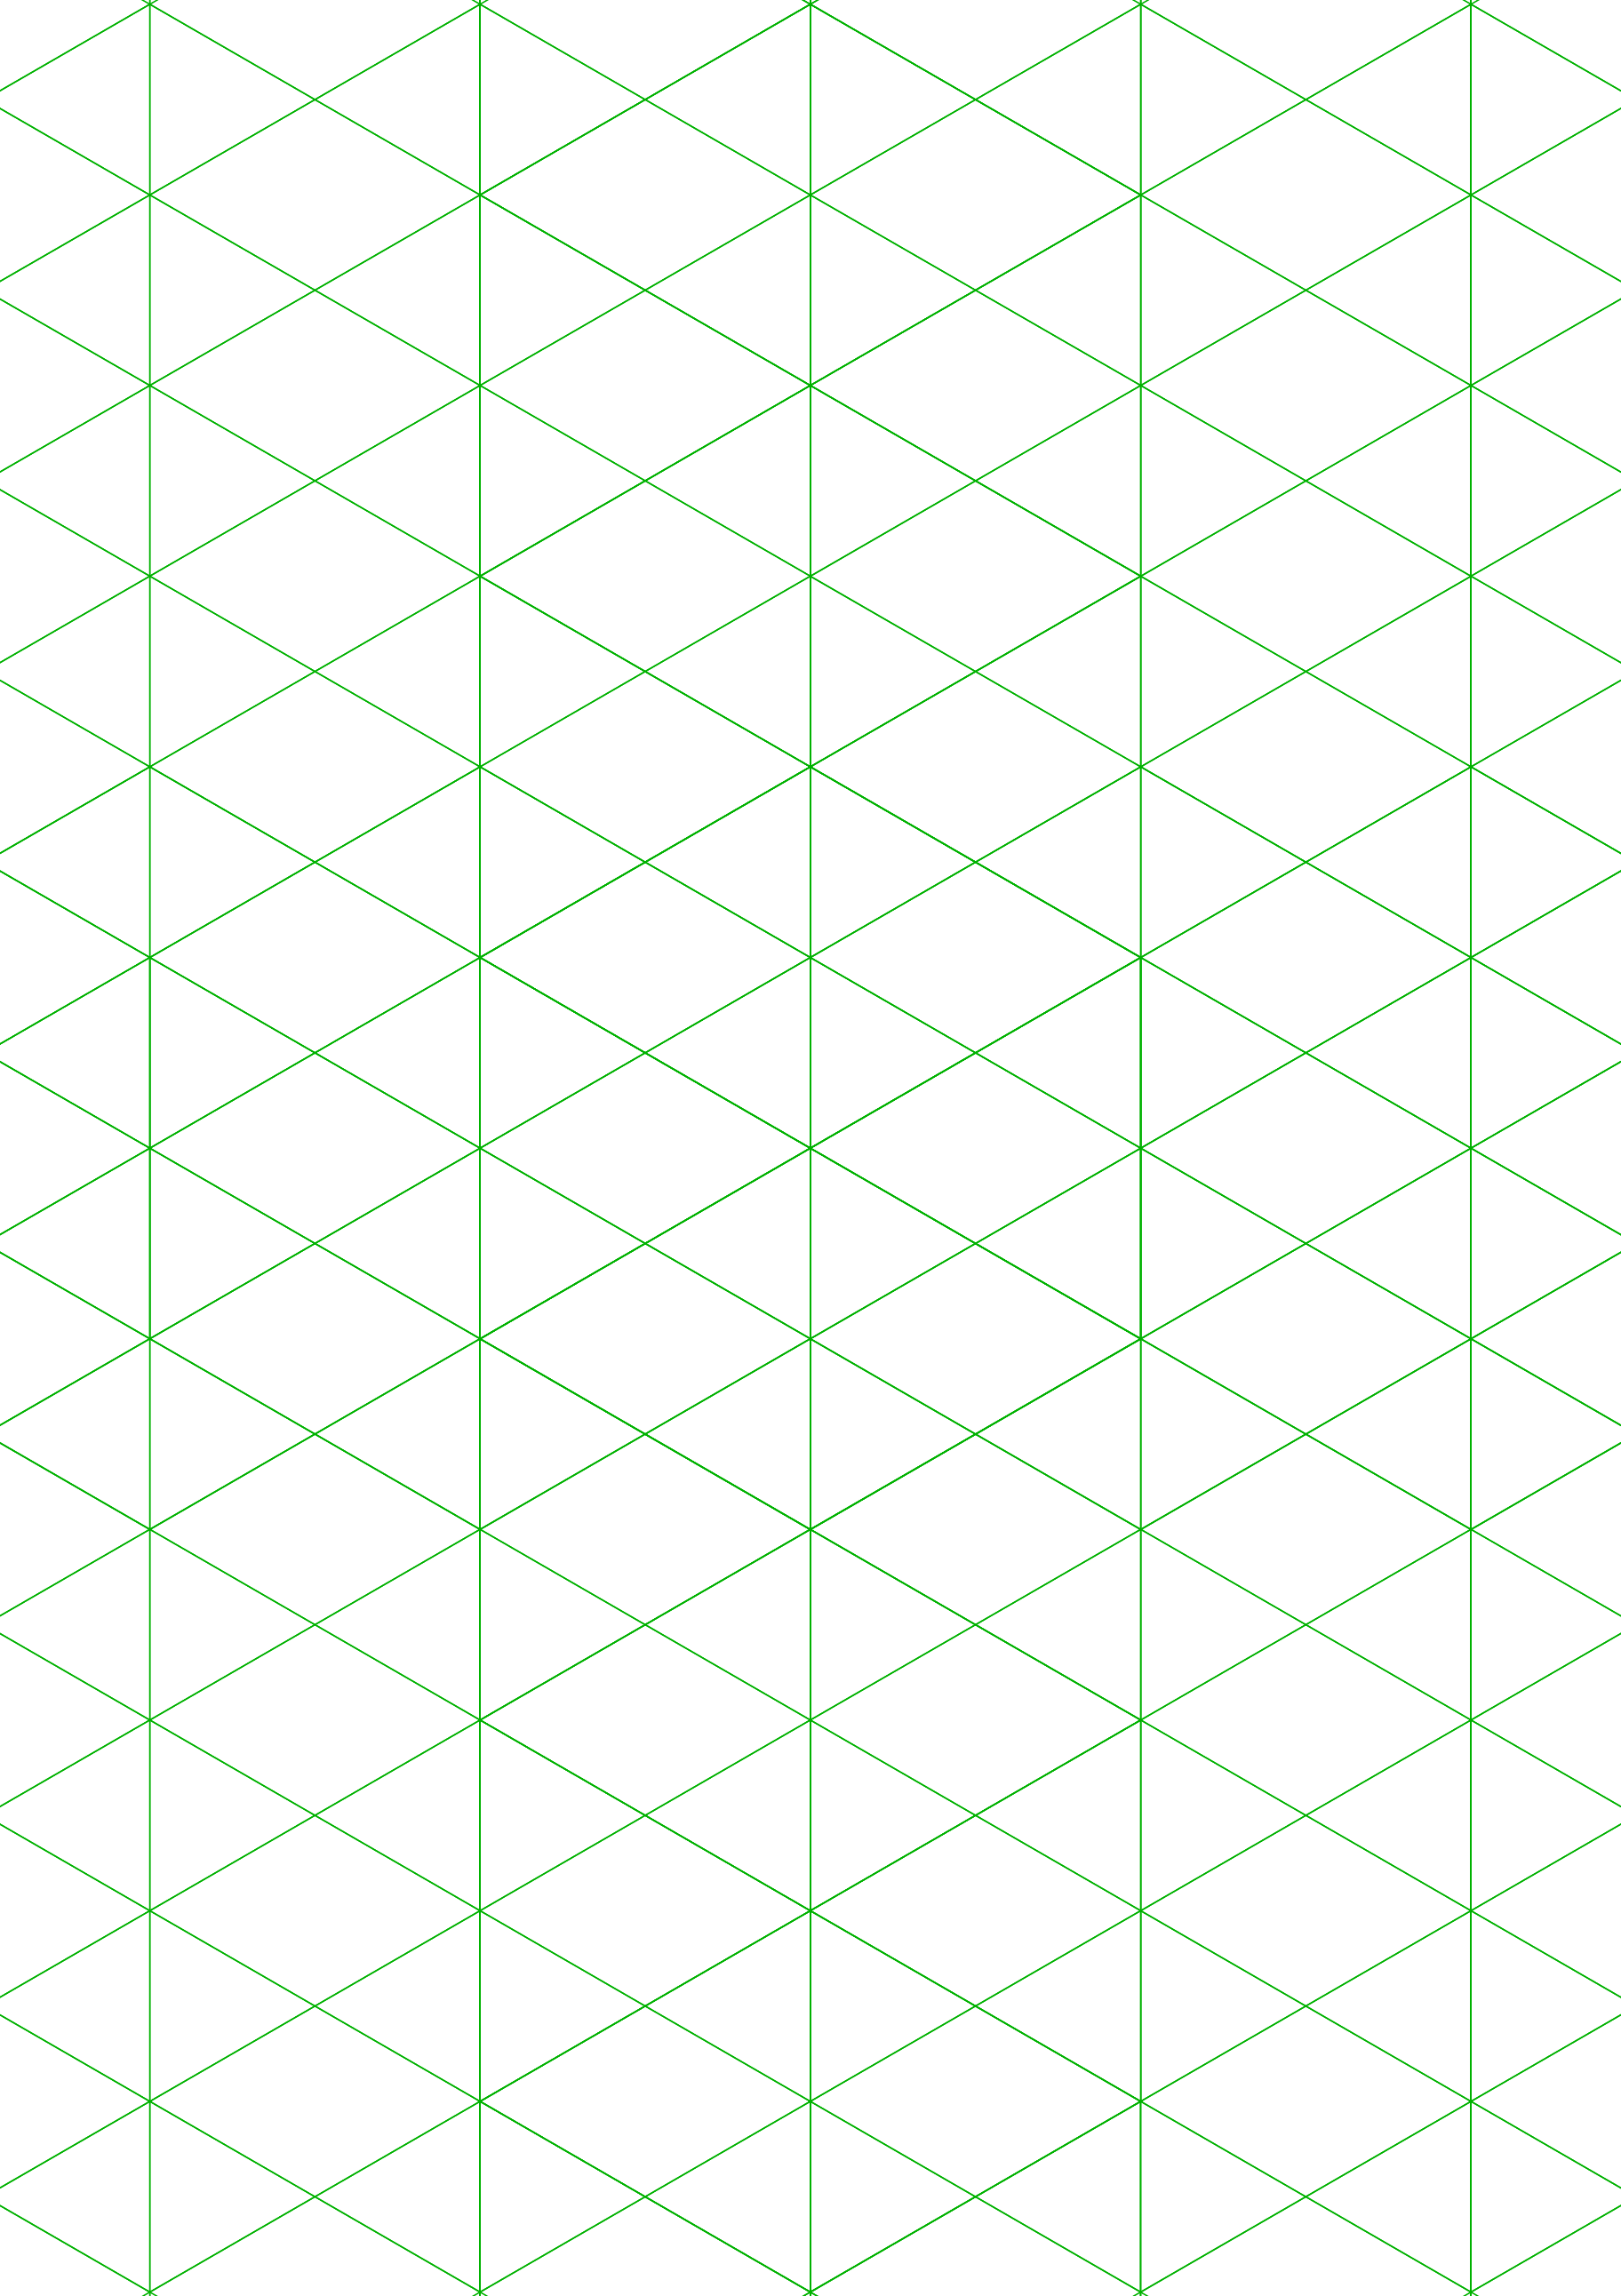 Isometric 1 Inch Figures Graph Paper Free Download